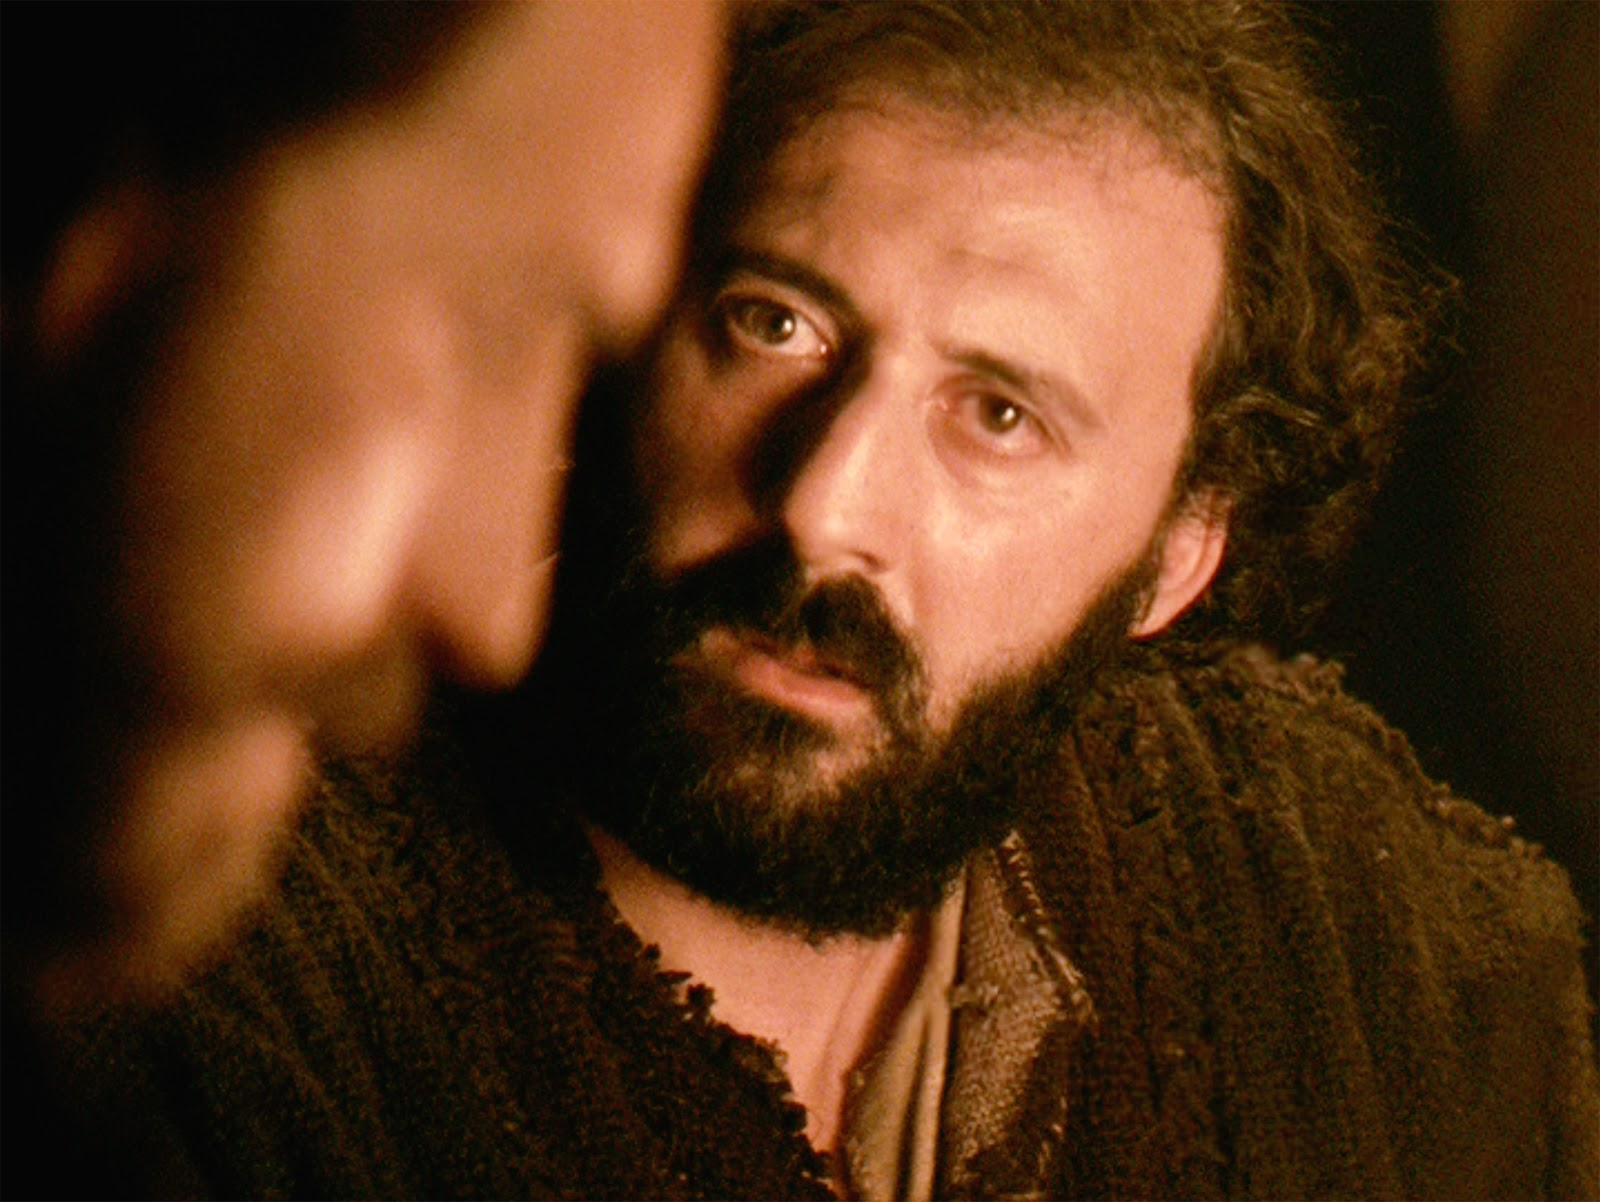 the passion of jesus christ and the The passion of christ is the story of jesus christ's arrest, trial, suffering and finally his execution by crucifixion but it is only an episode in a longer story that includes the resurrection.